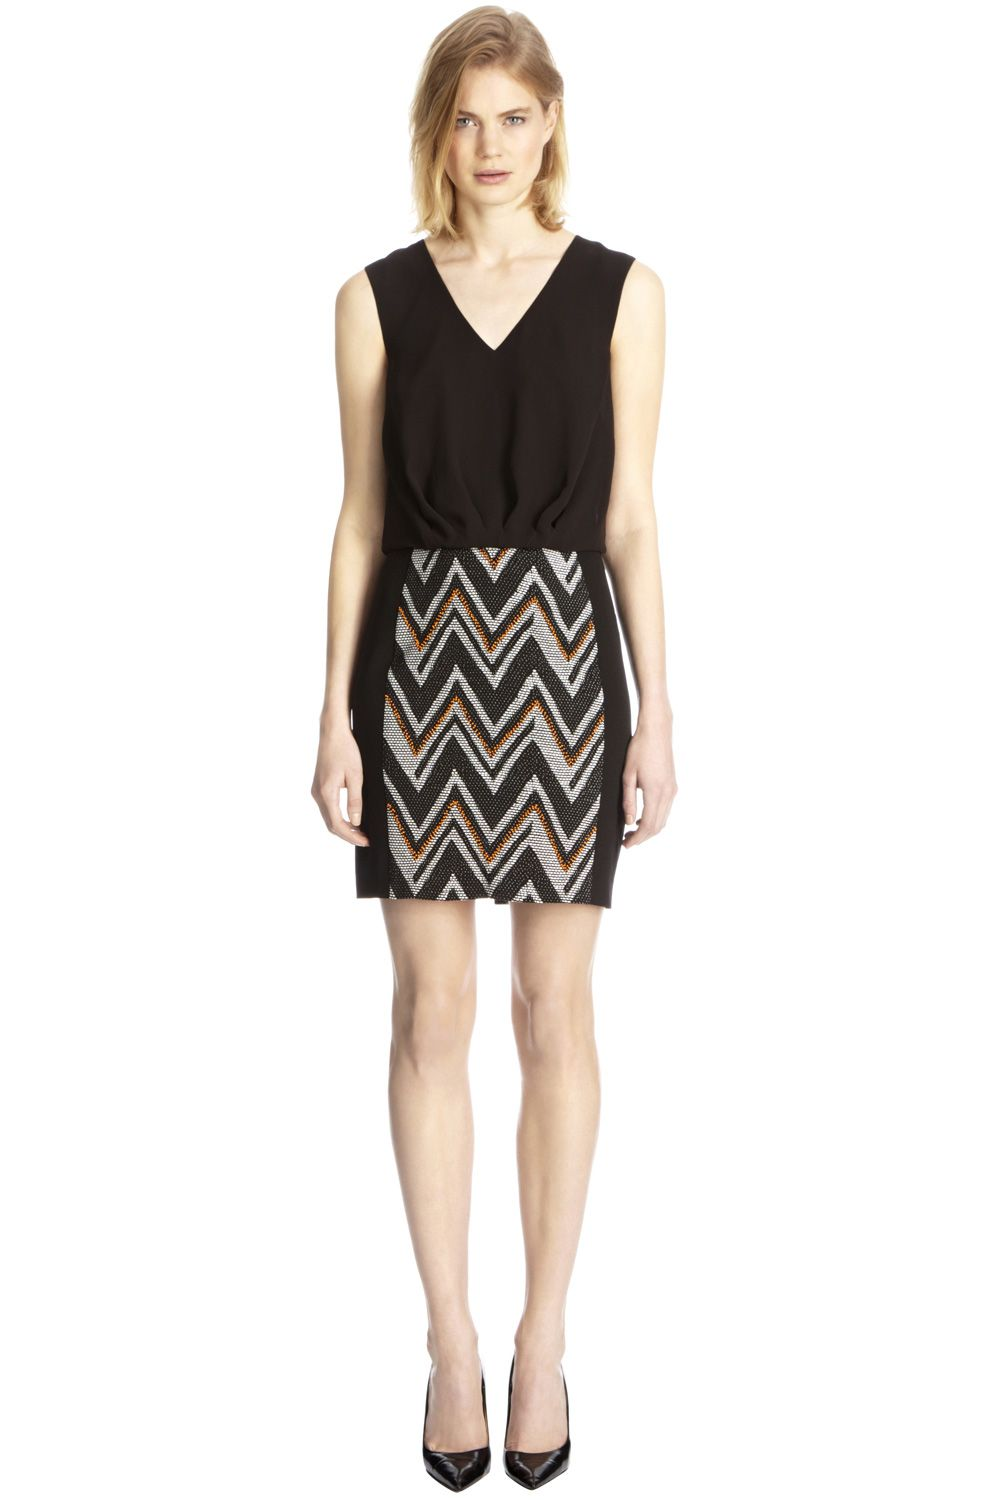 Chevron skirt soft top dress